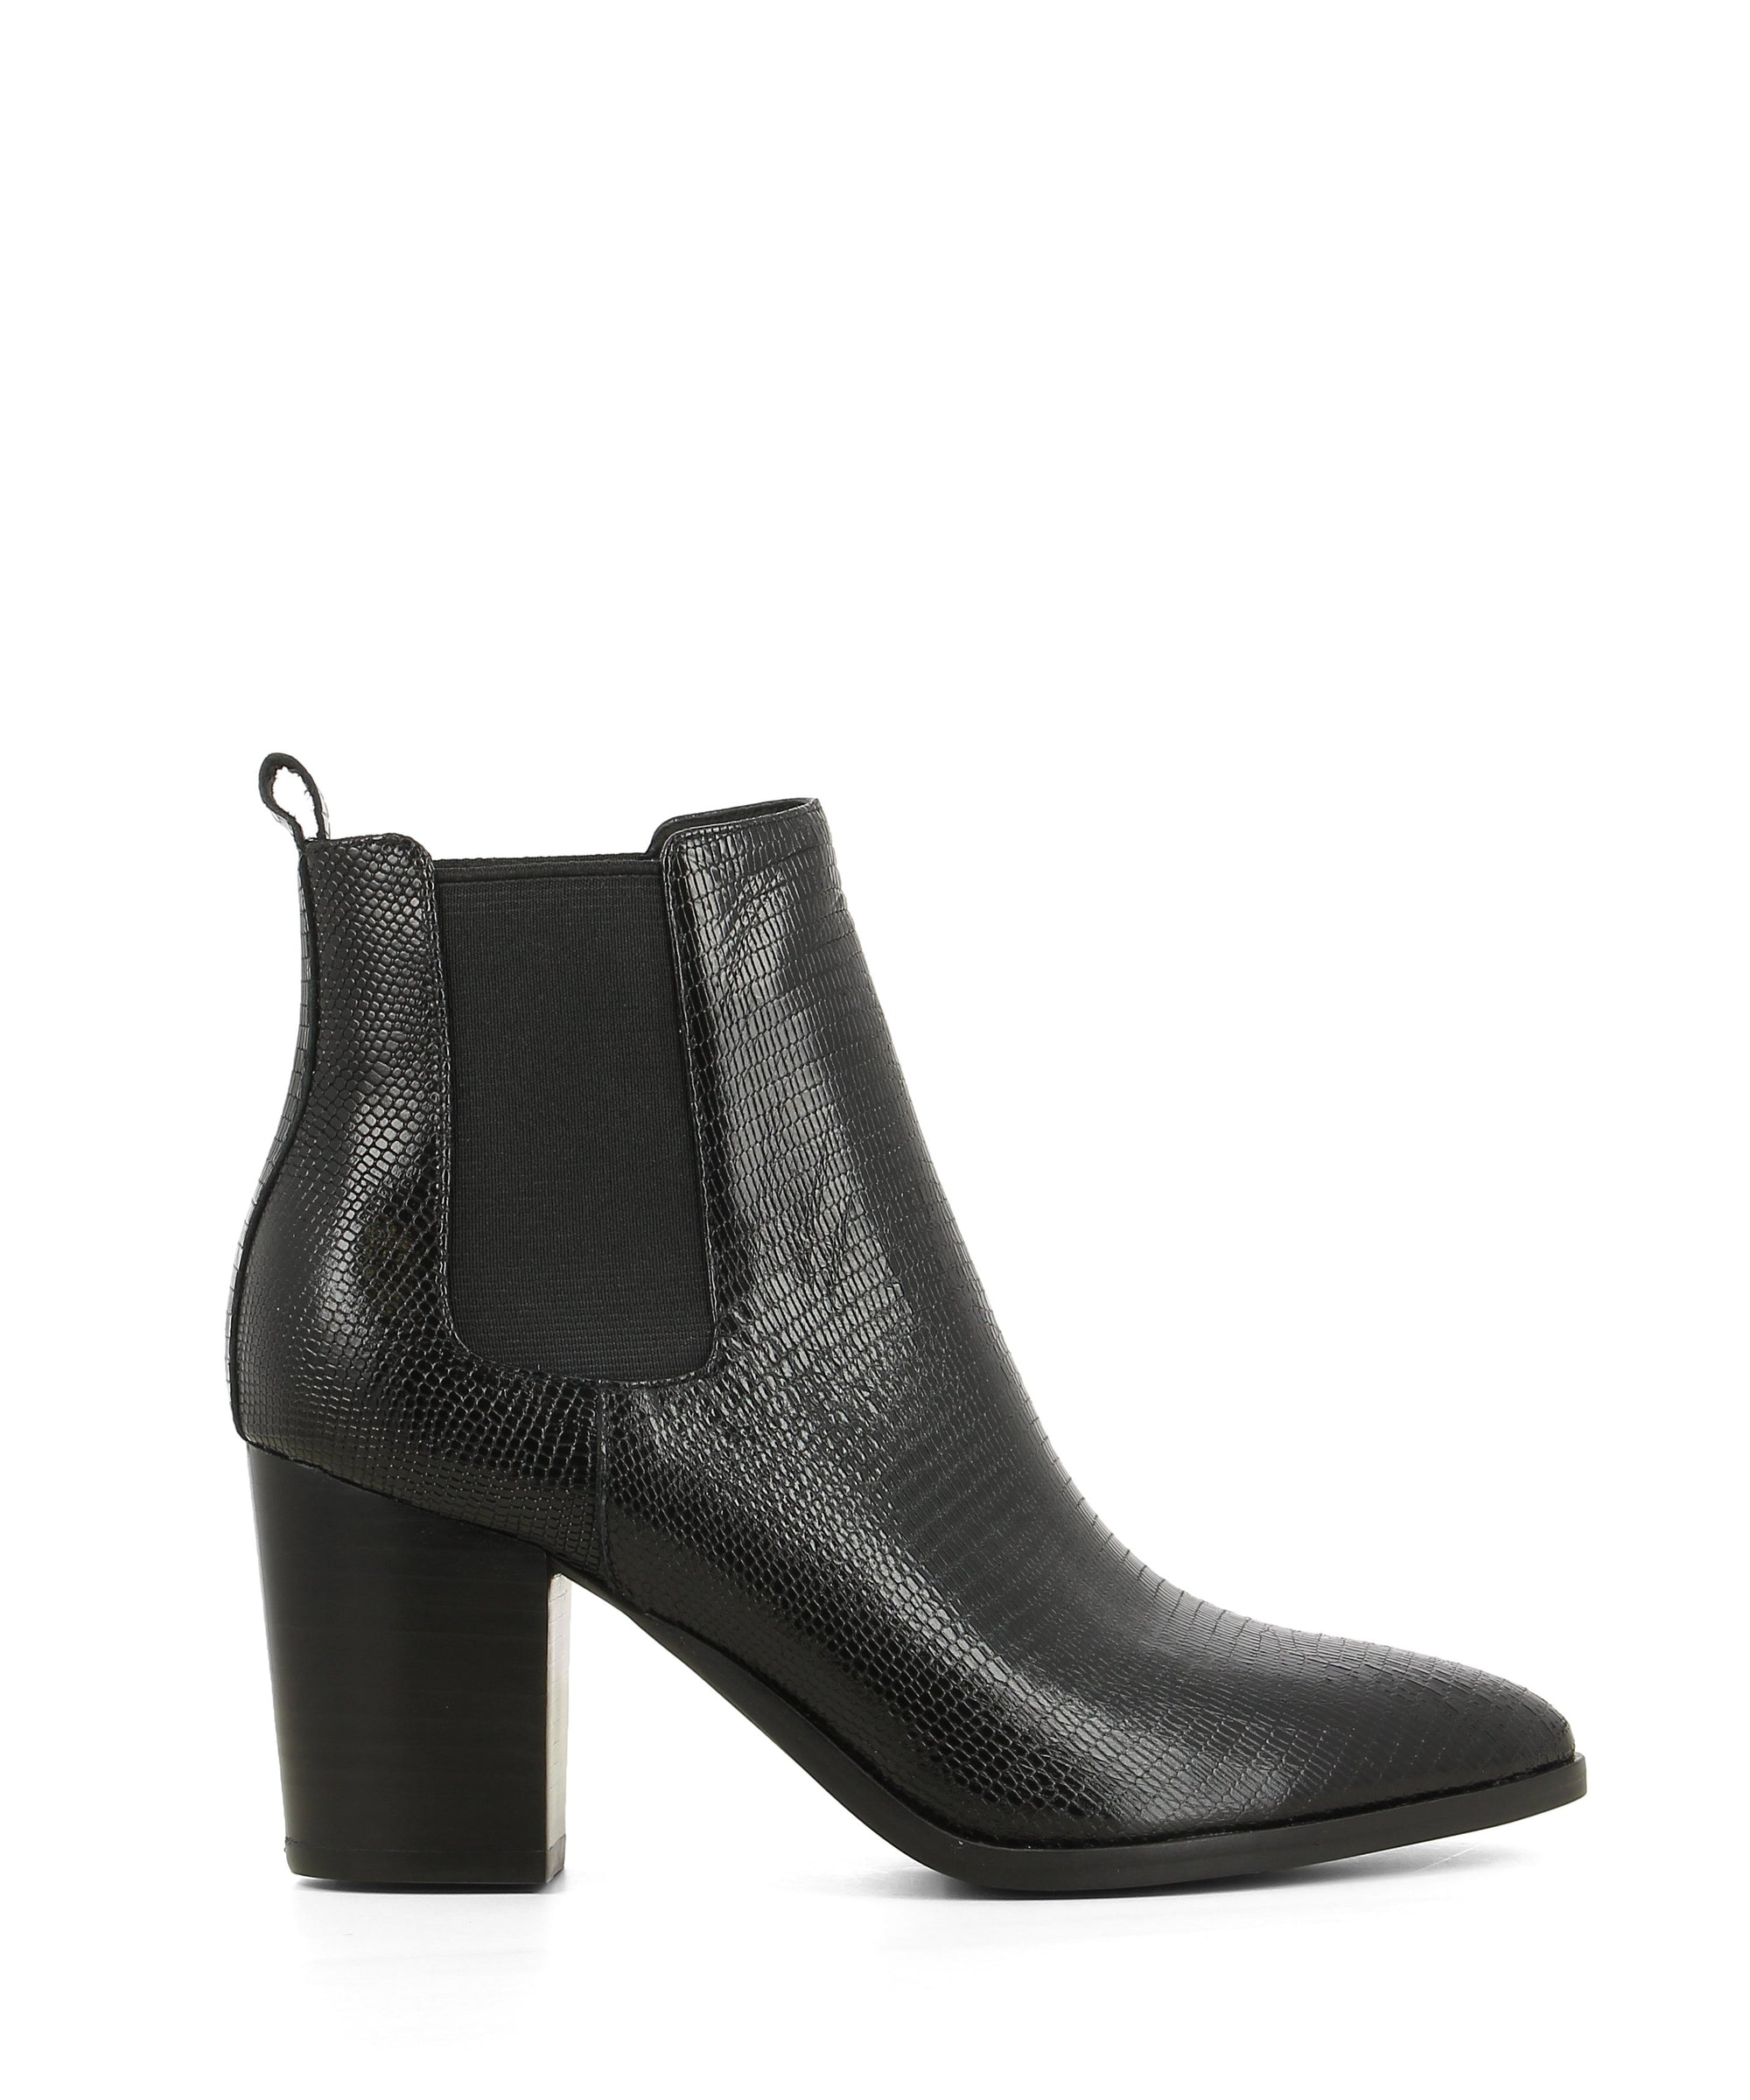 A black leather Chelsea style ankle boot that features elastic gussets, a shiny snake skin print, a 7cm block heel and a pointed toe by Django & Juliette.